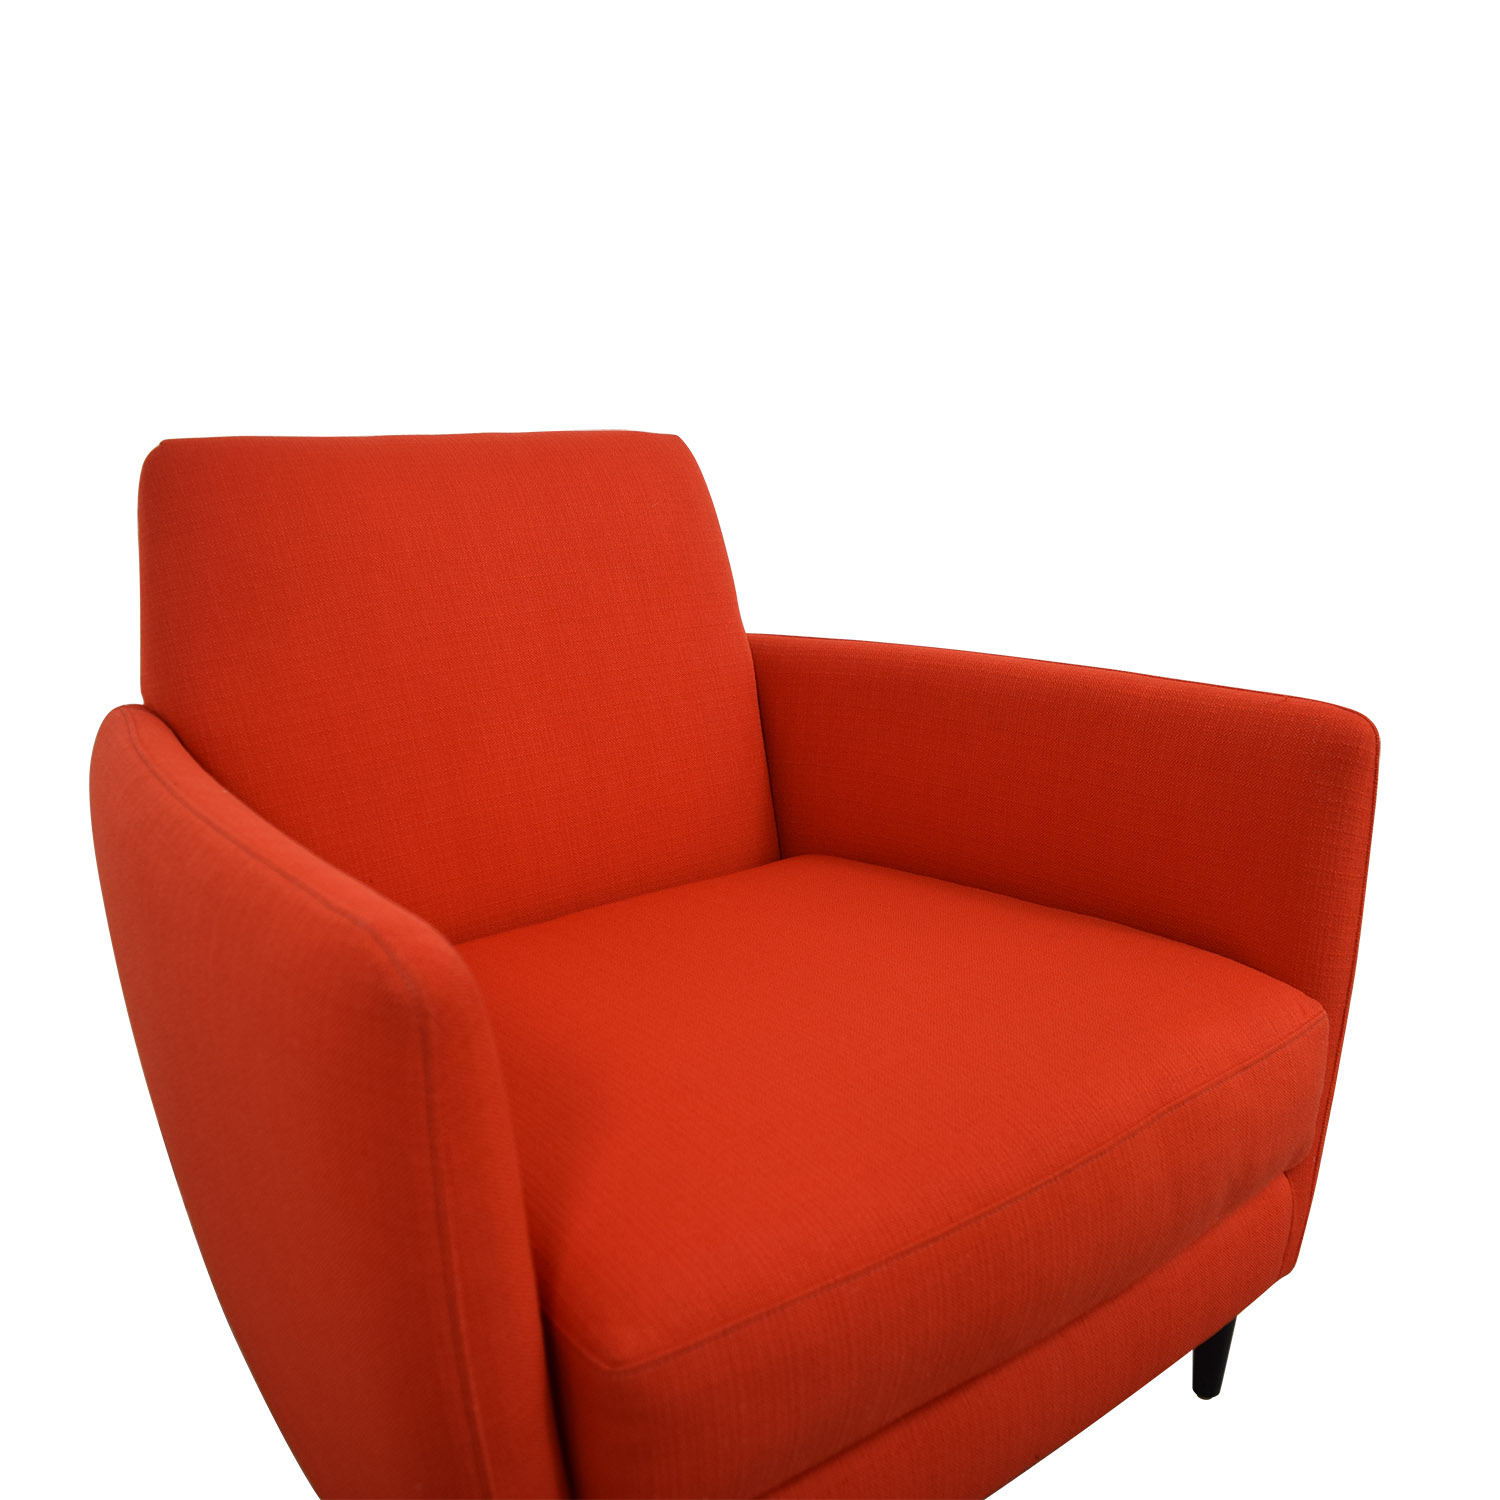 buy CB2 Orange Red Parlour Chair CB2 Accent Chairs